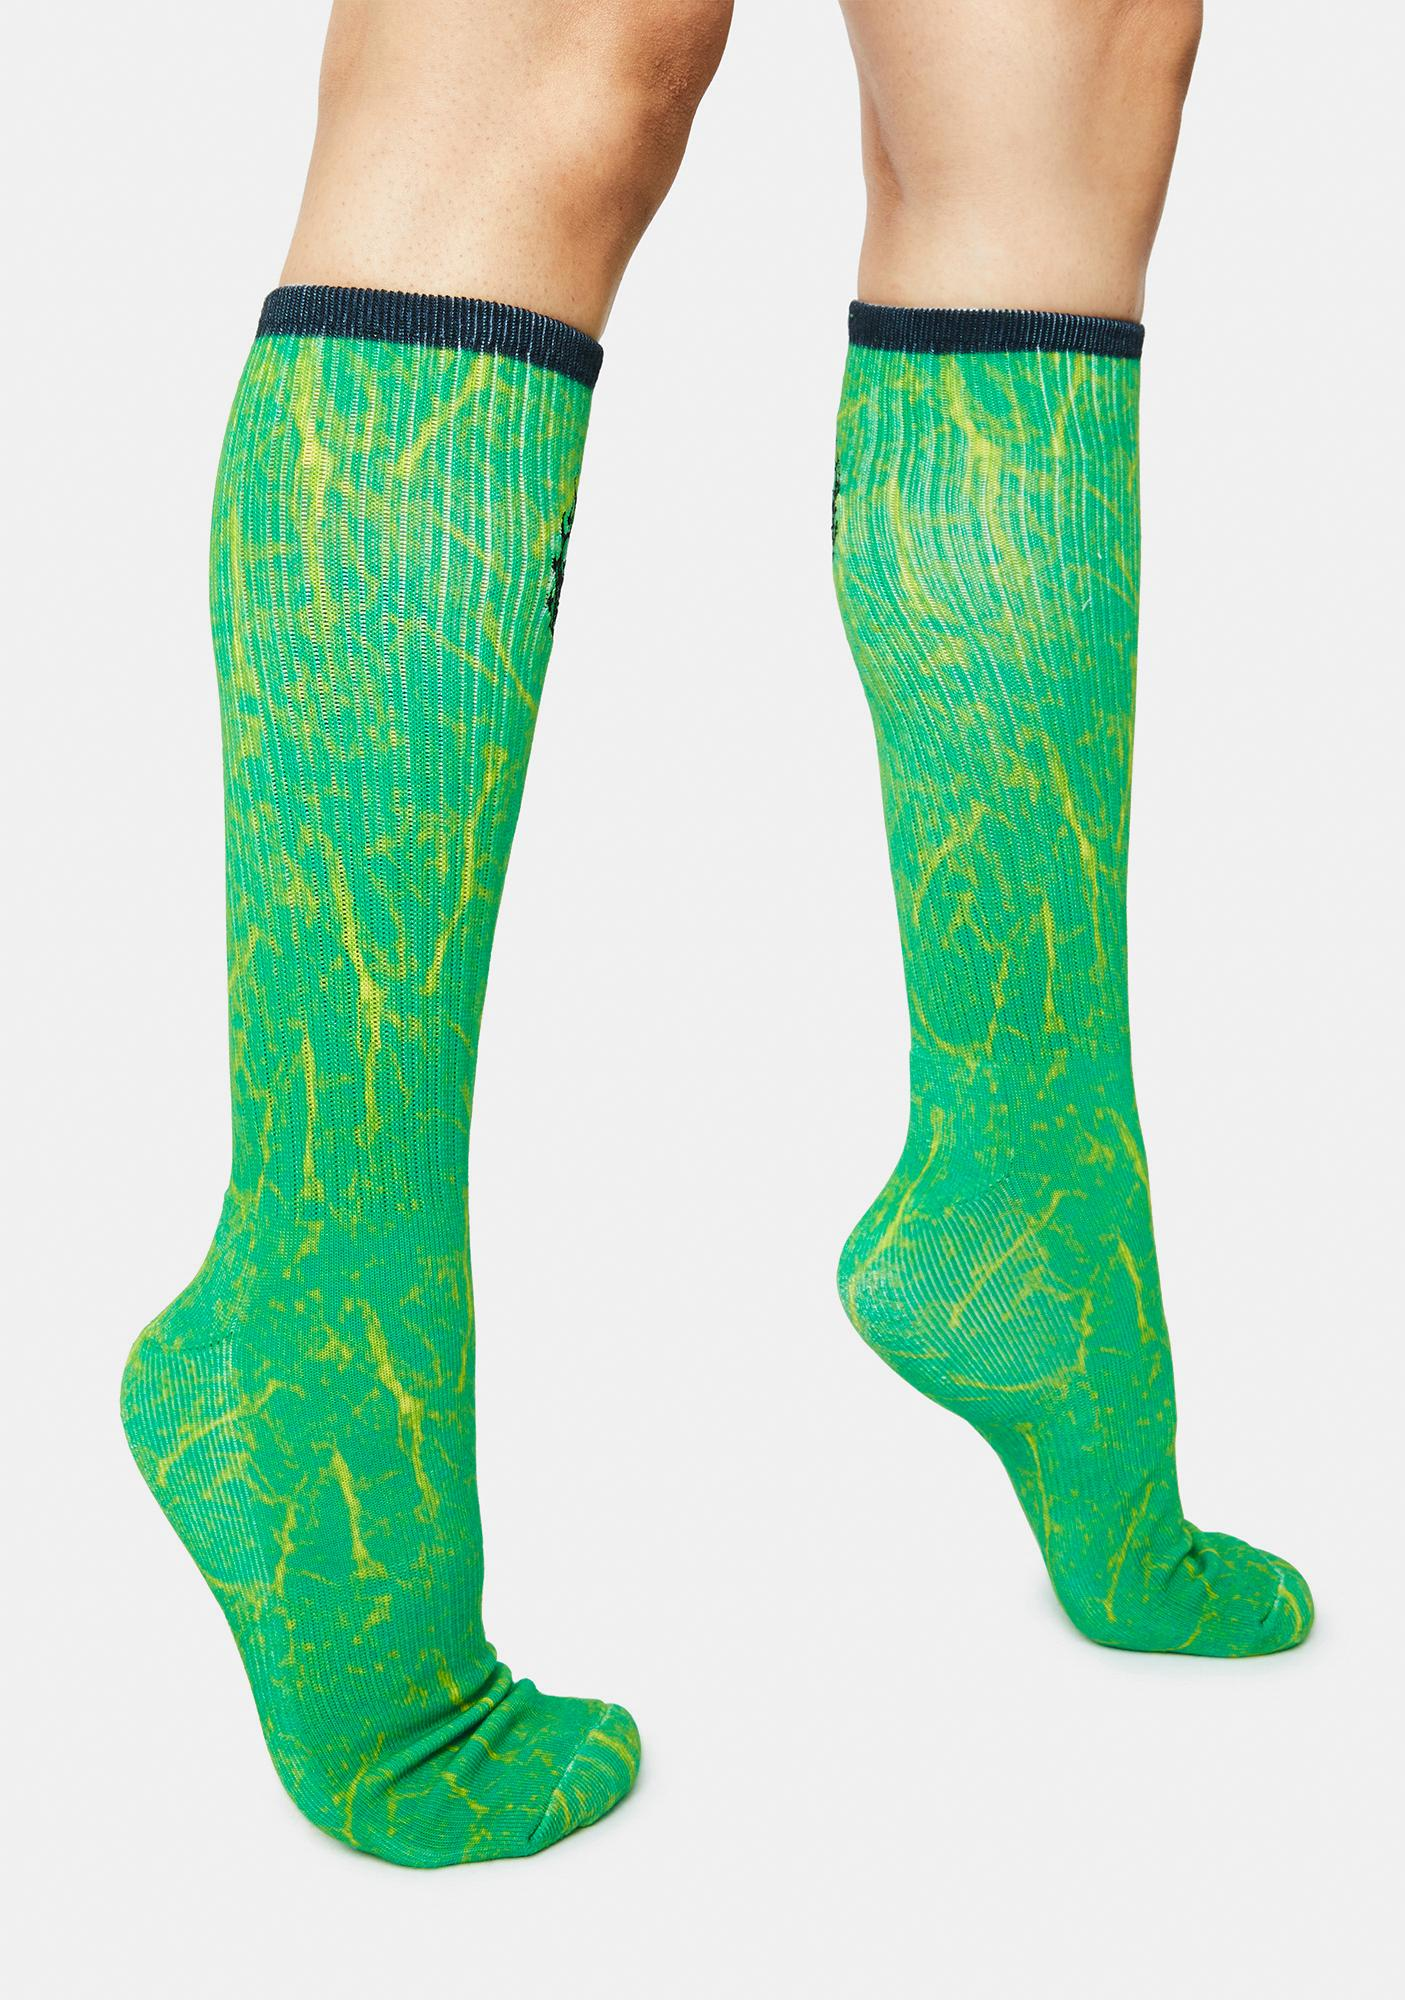 Creature Skateboards Green Corpse Socks